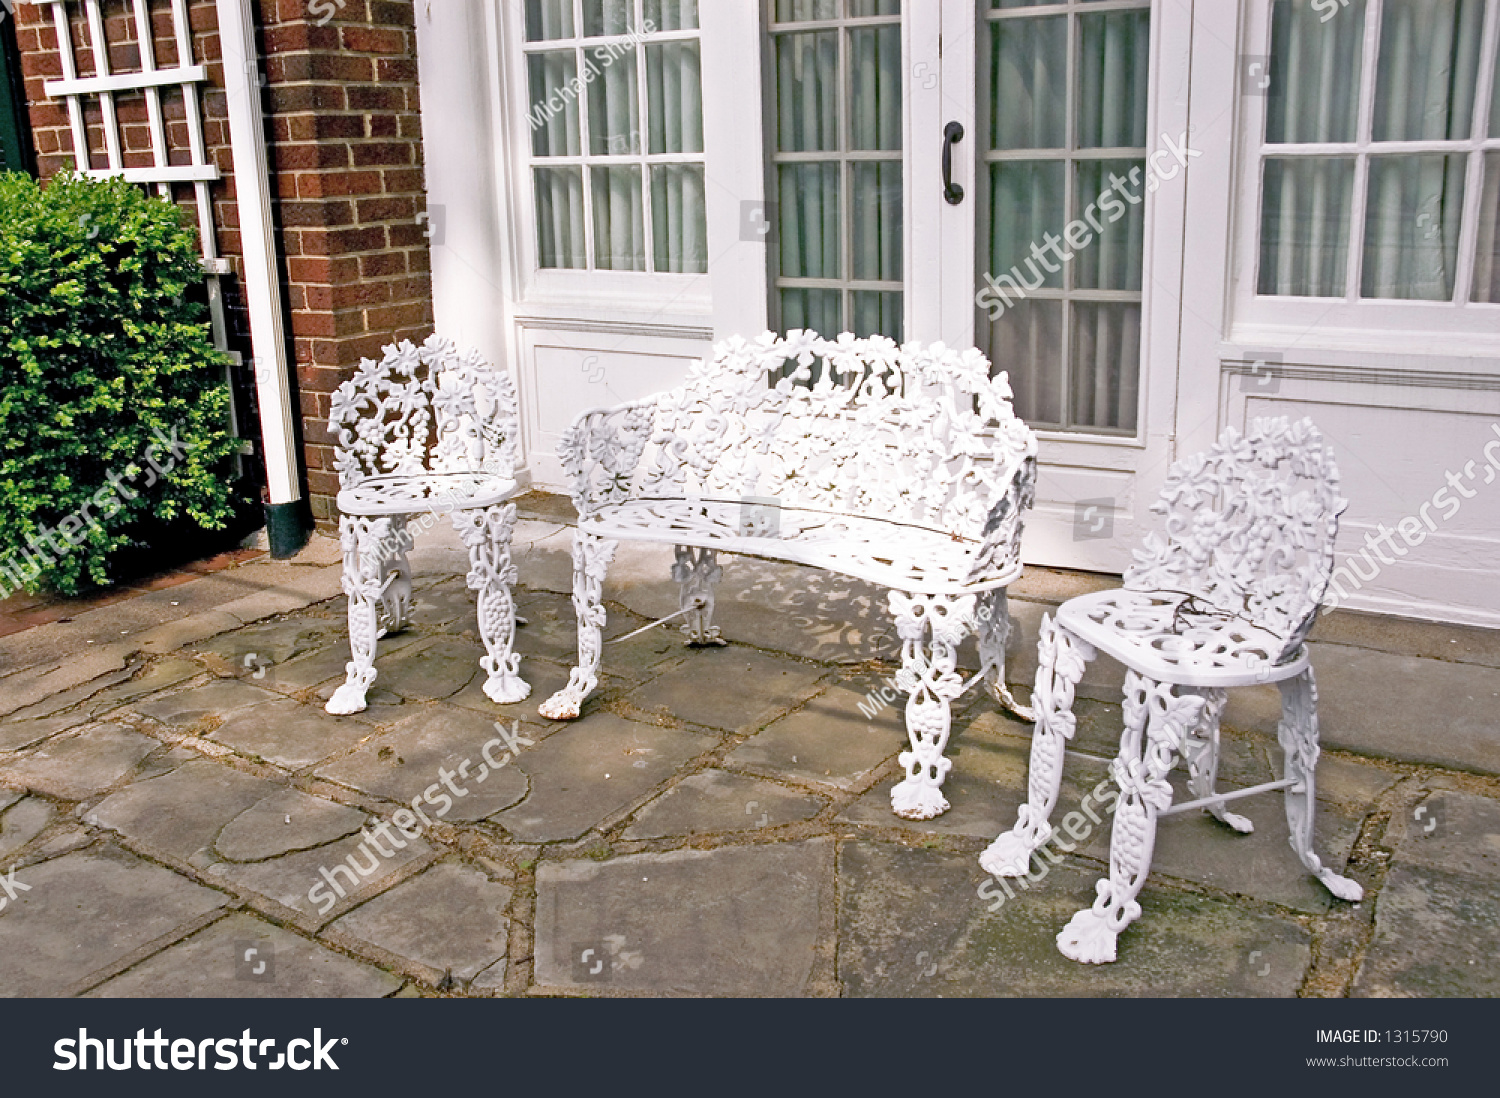 Formal Wrought Iron Patio Furniture Stock Photo 1315790